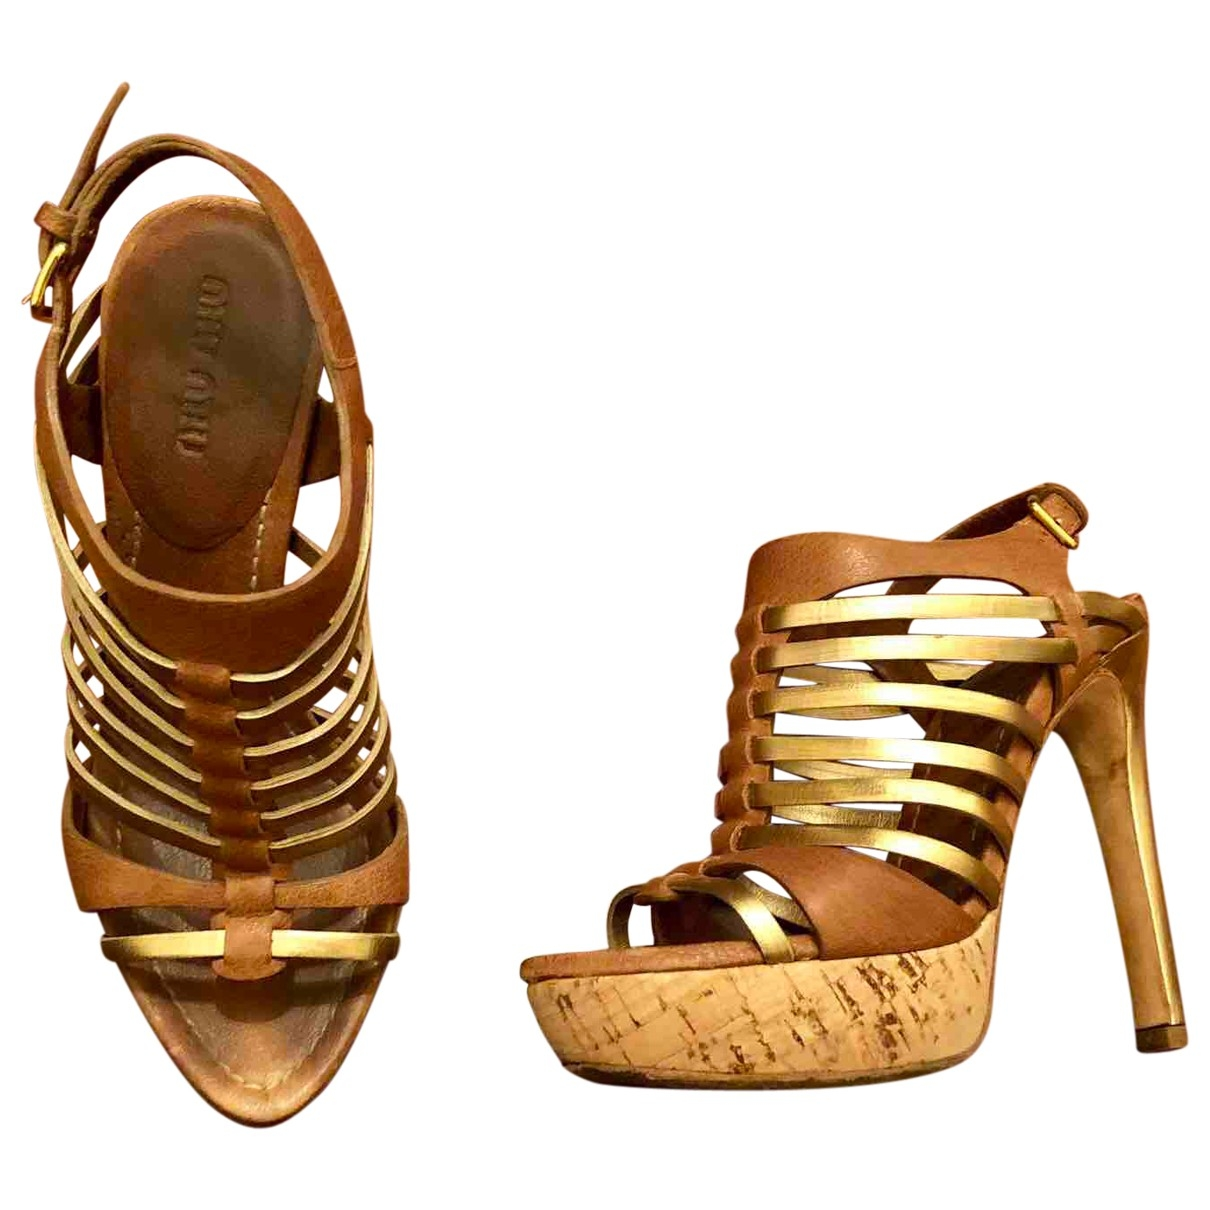 Miu Miu \N Gold Leather Sandals for Women 35 EU